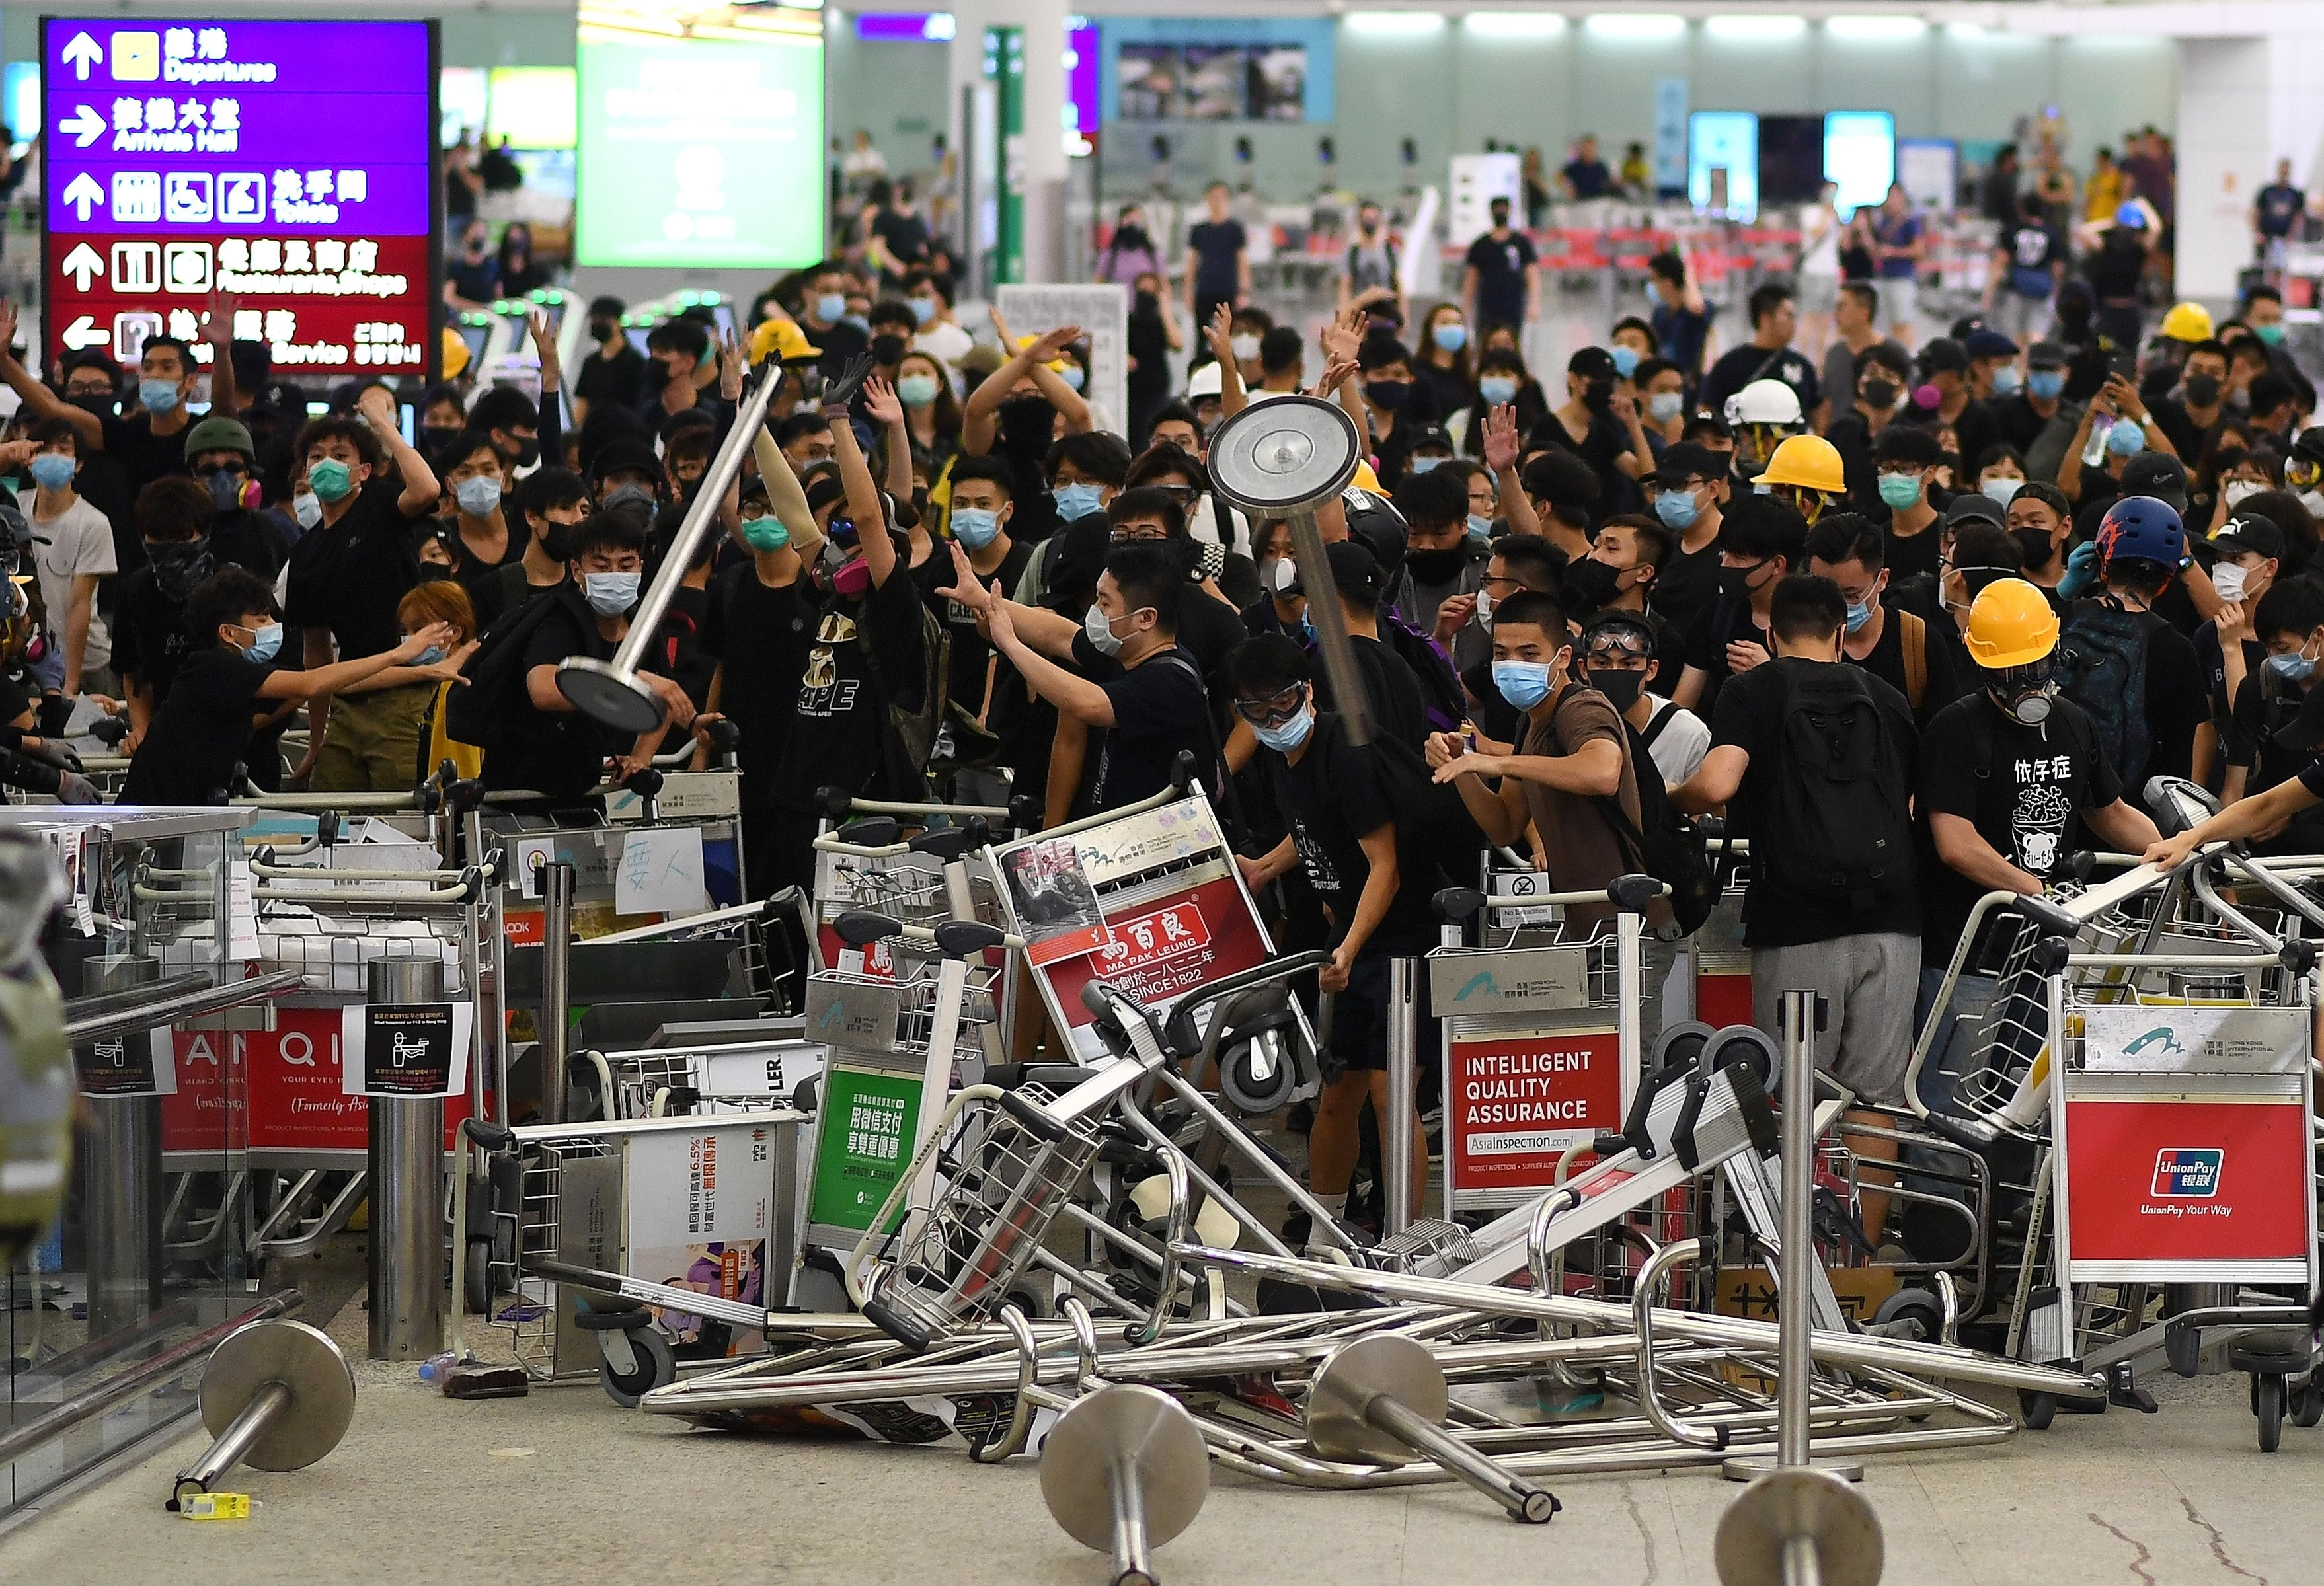 Pro-democracy protesters and police scuffle at Hong Kong's airport on Aug. 13, 2019.